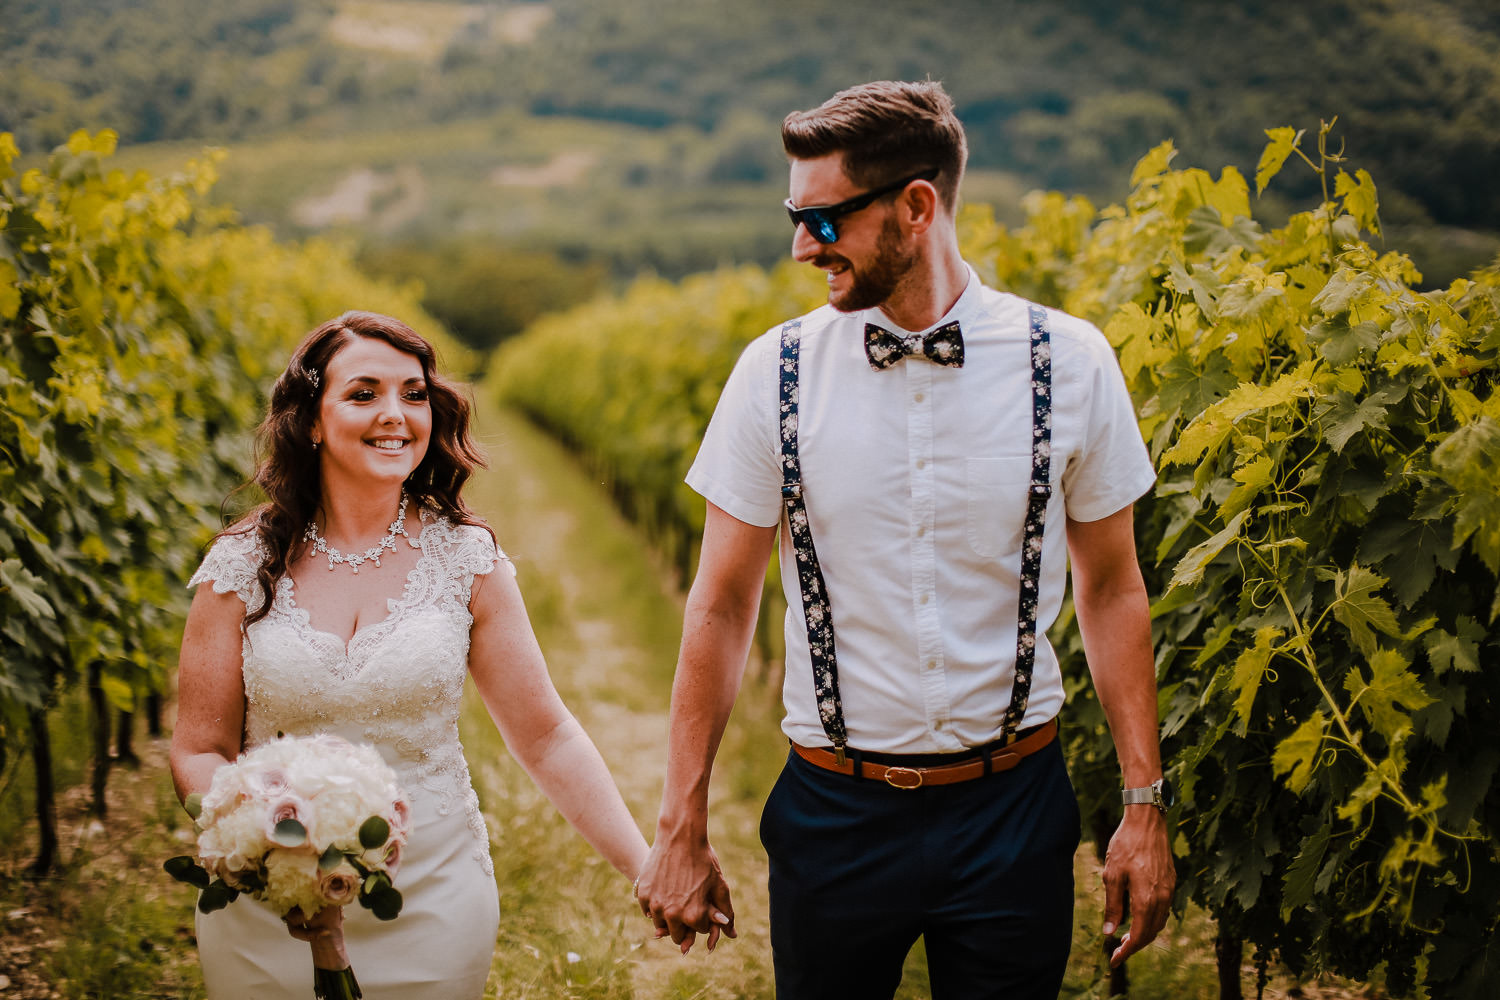 Bride and groom in vine yard fields wedding in Tuscany